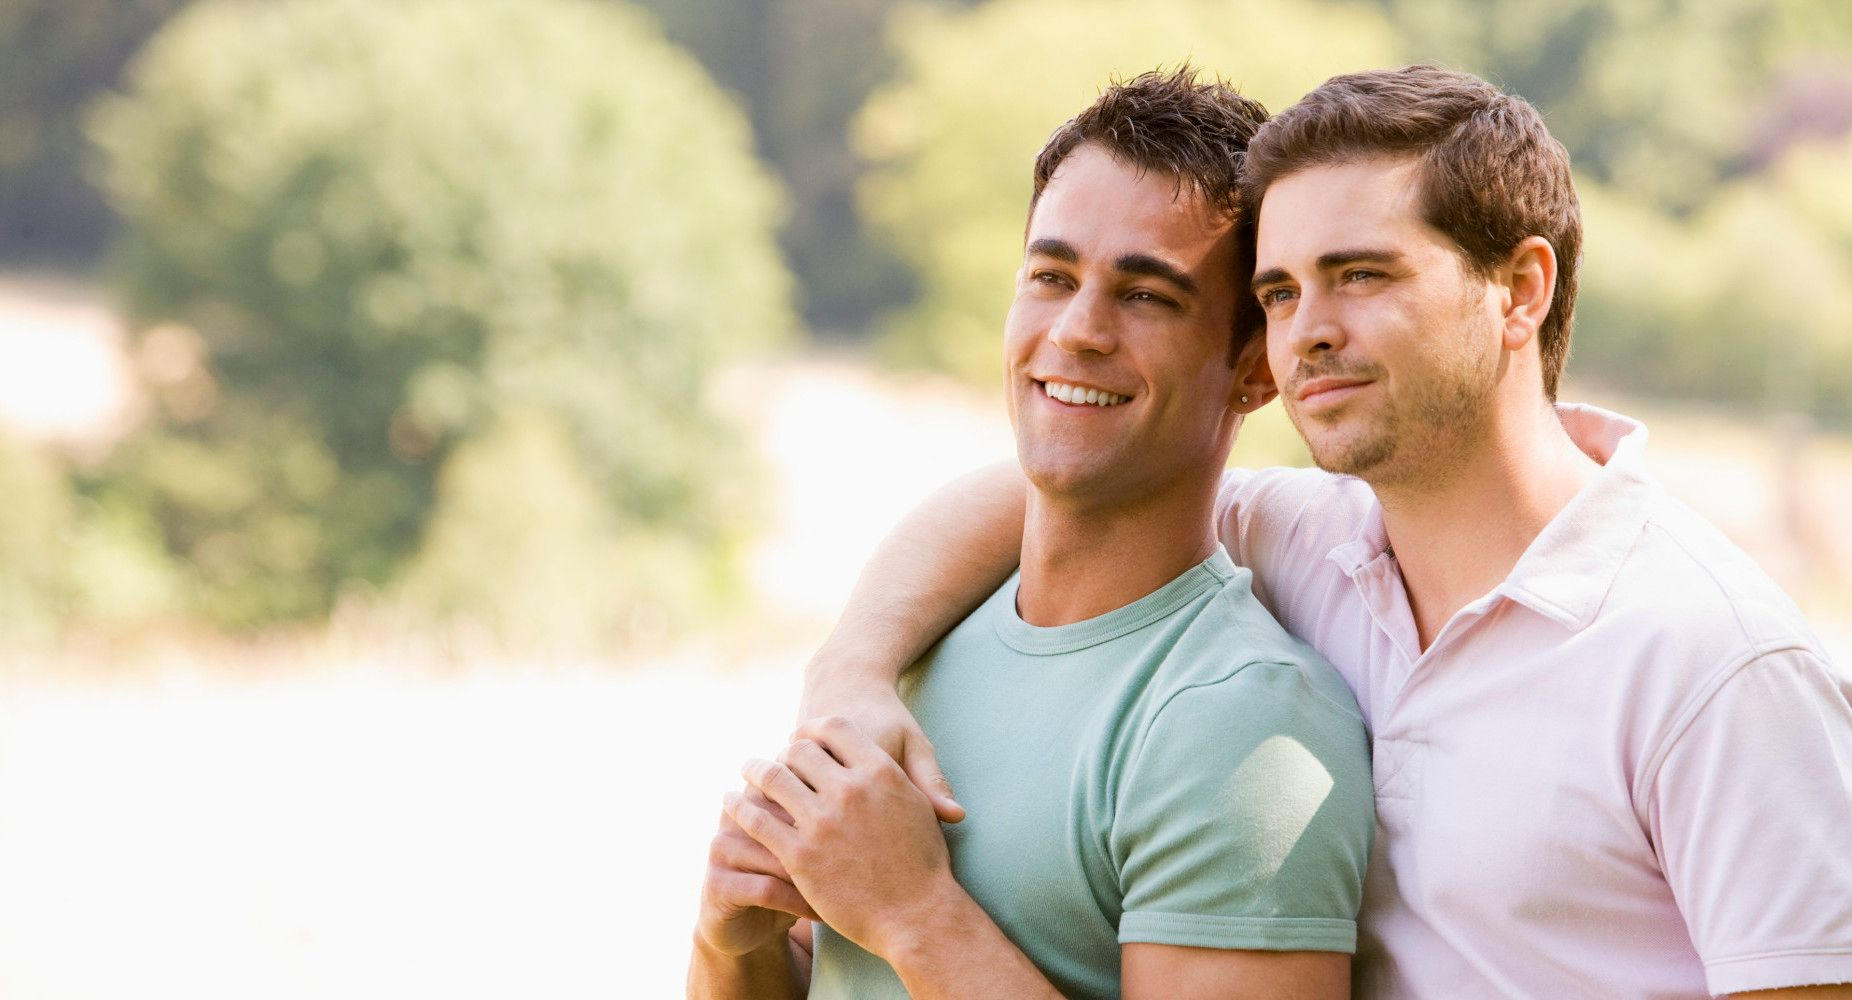 Gay male hookup tips